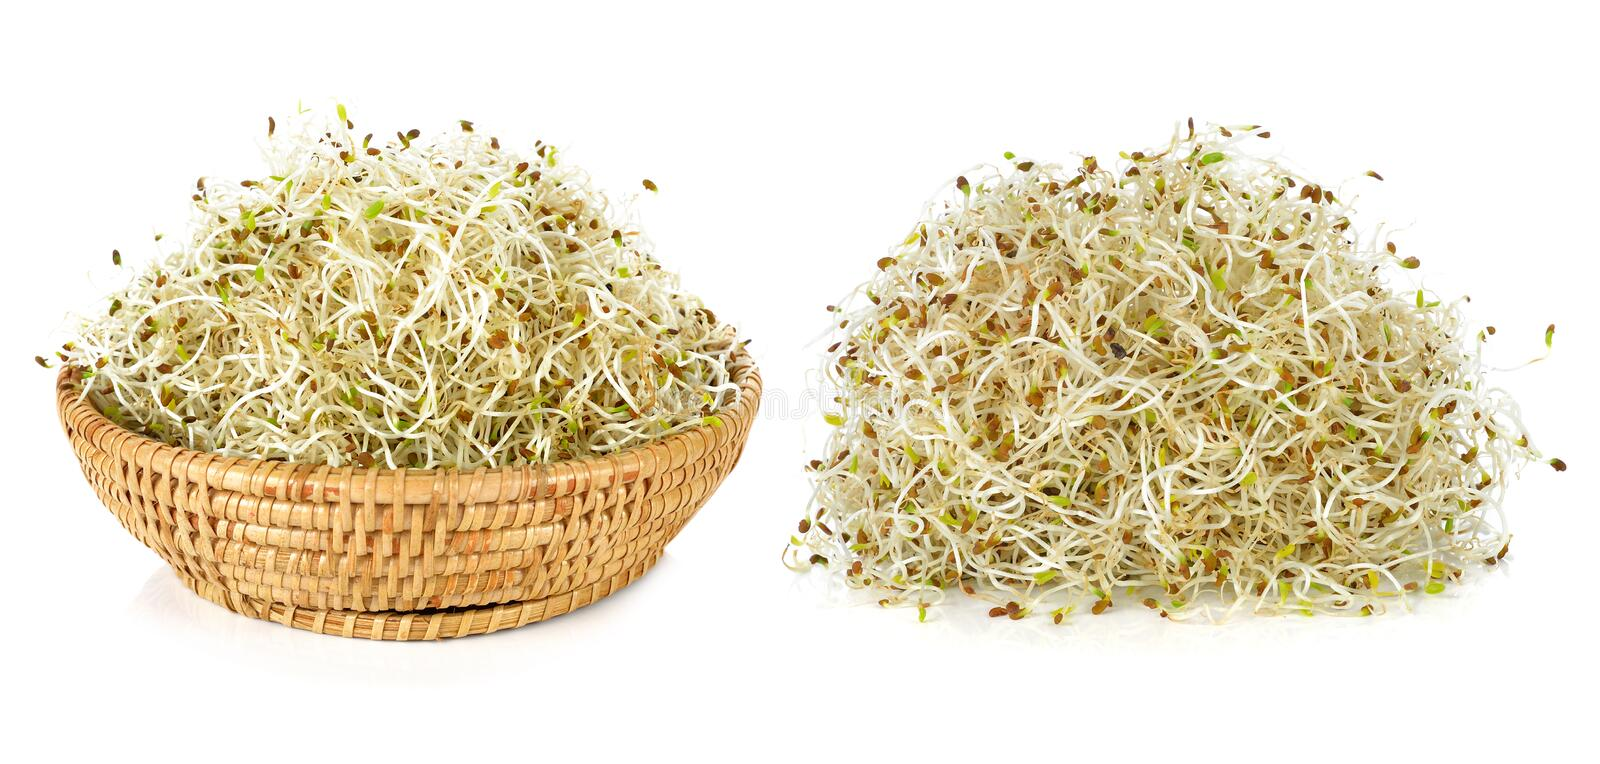 Sprouted alfalfa. On a white background royalty free stock images